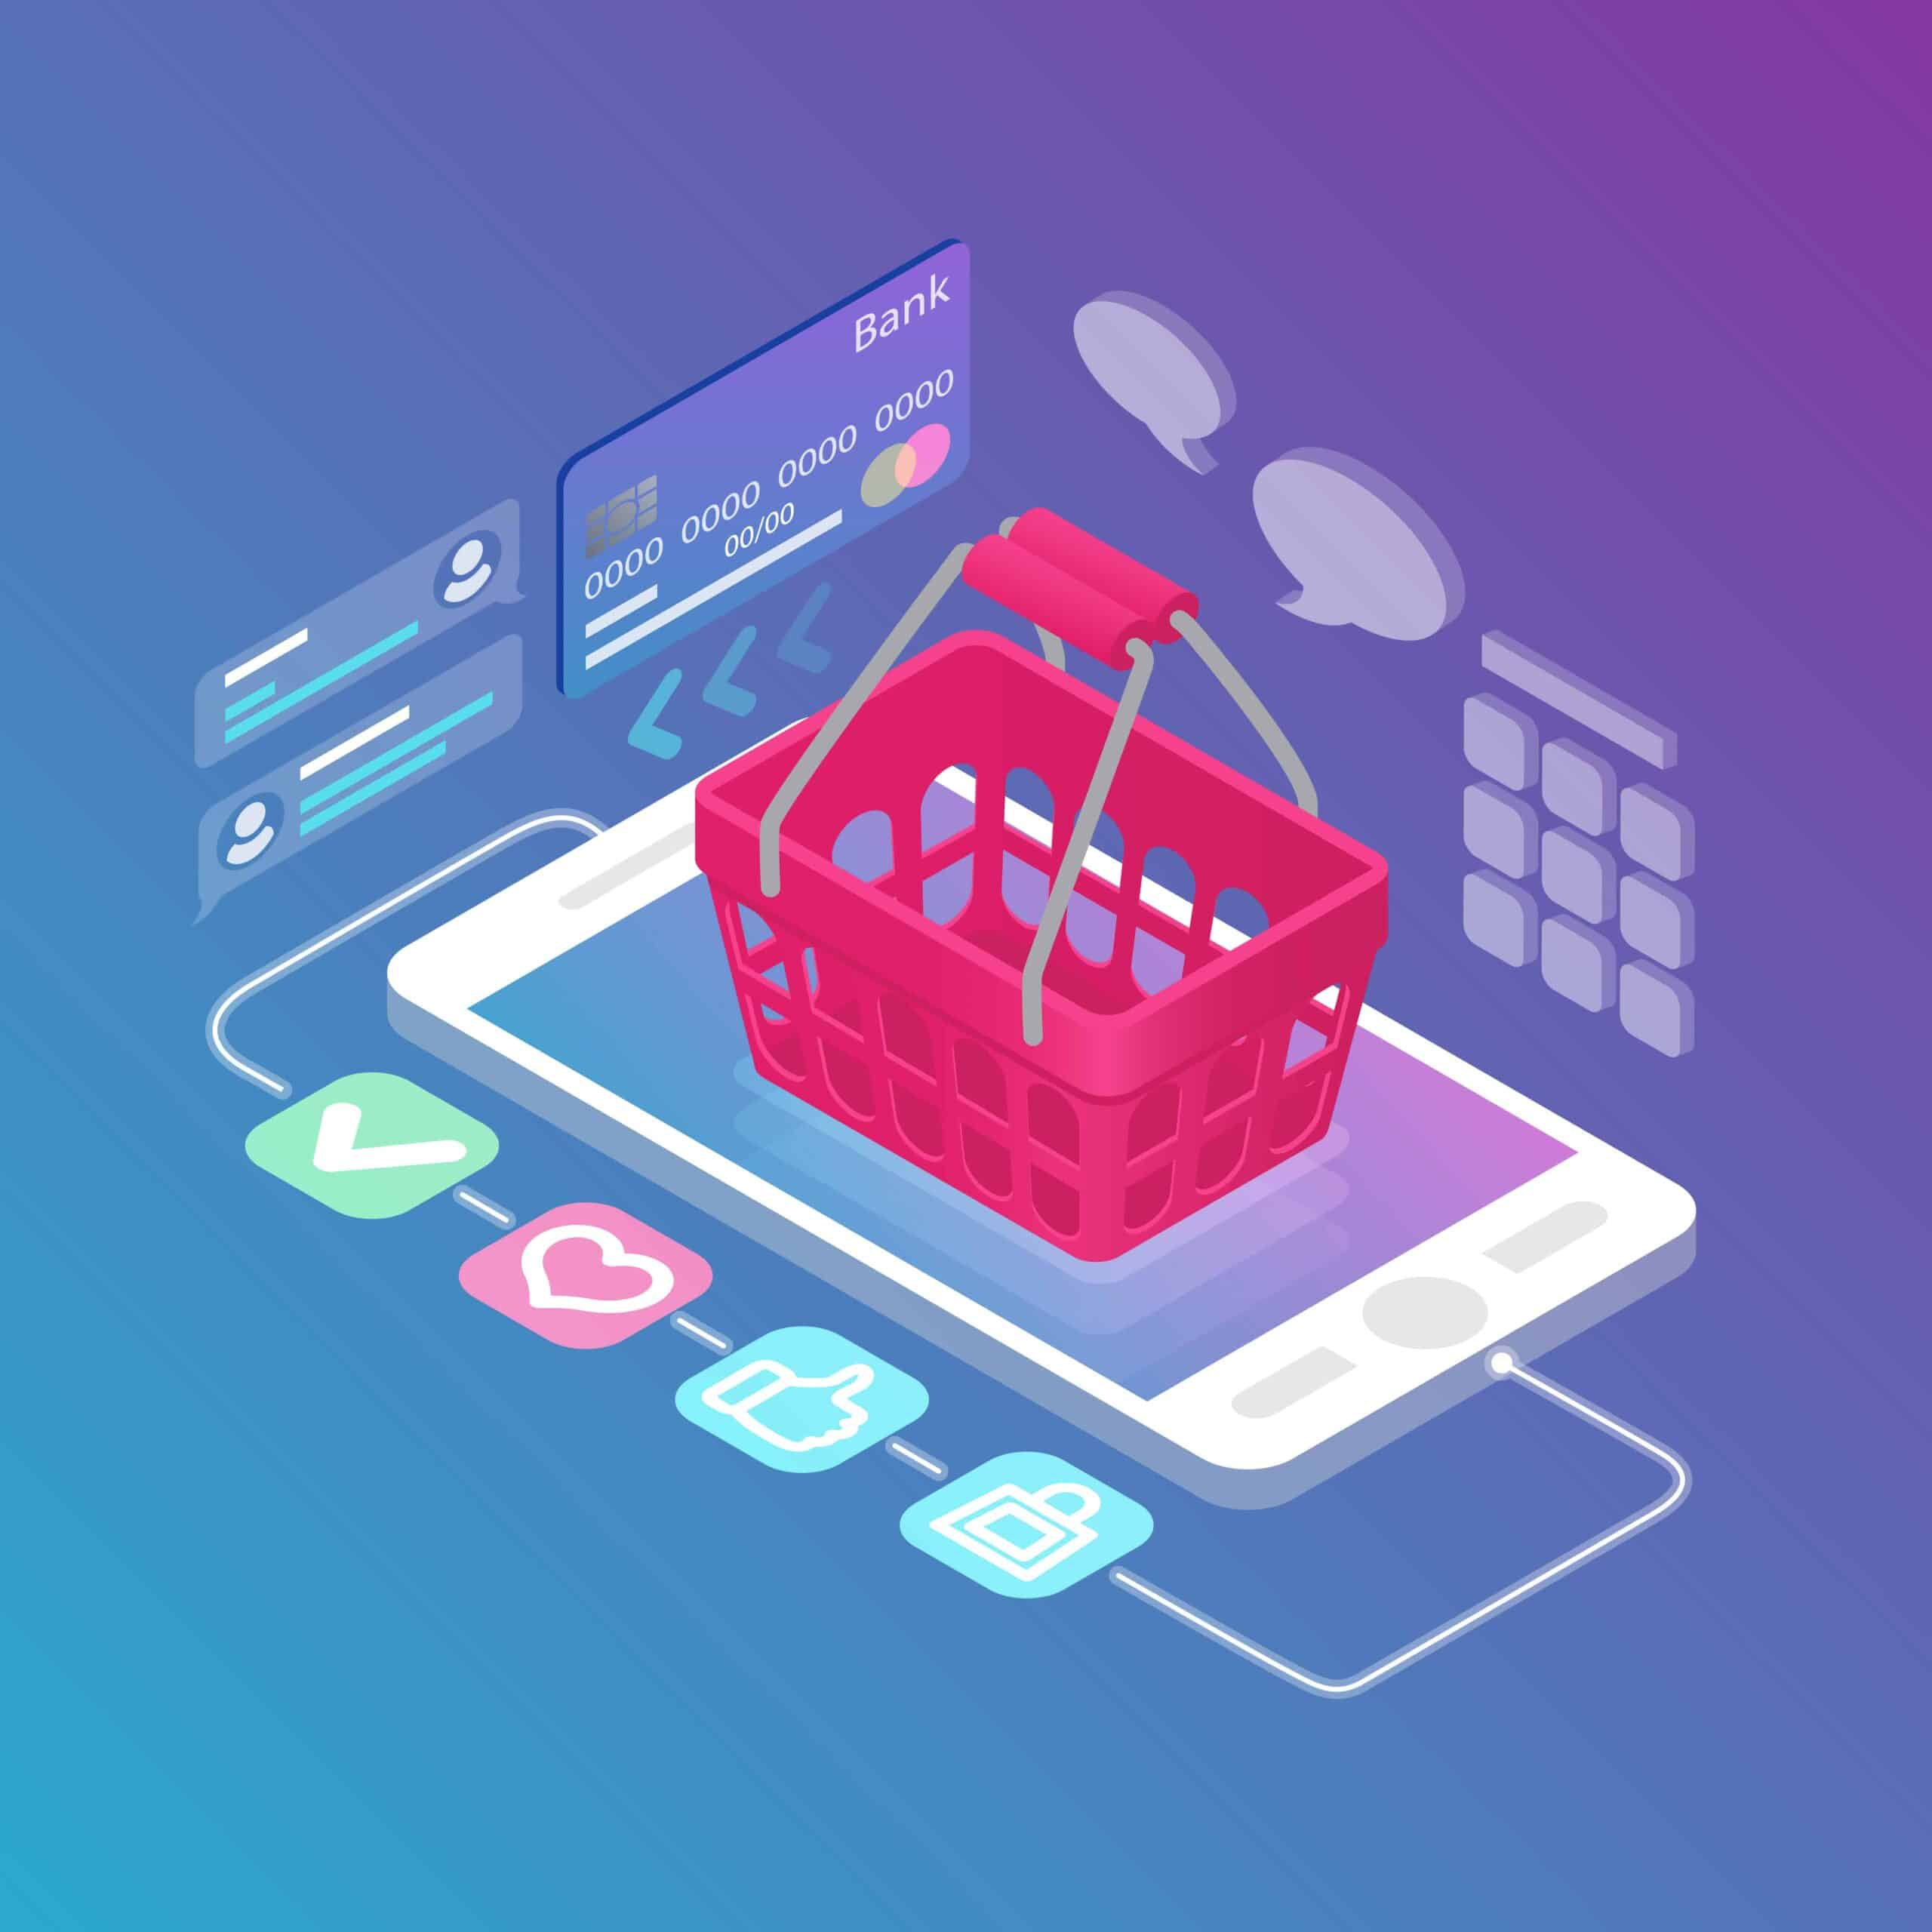 eCommerce and eShops